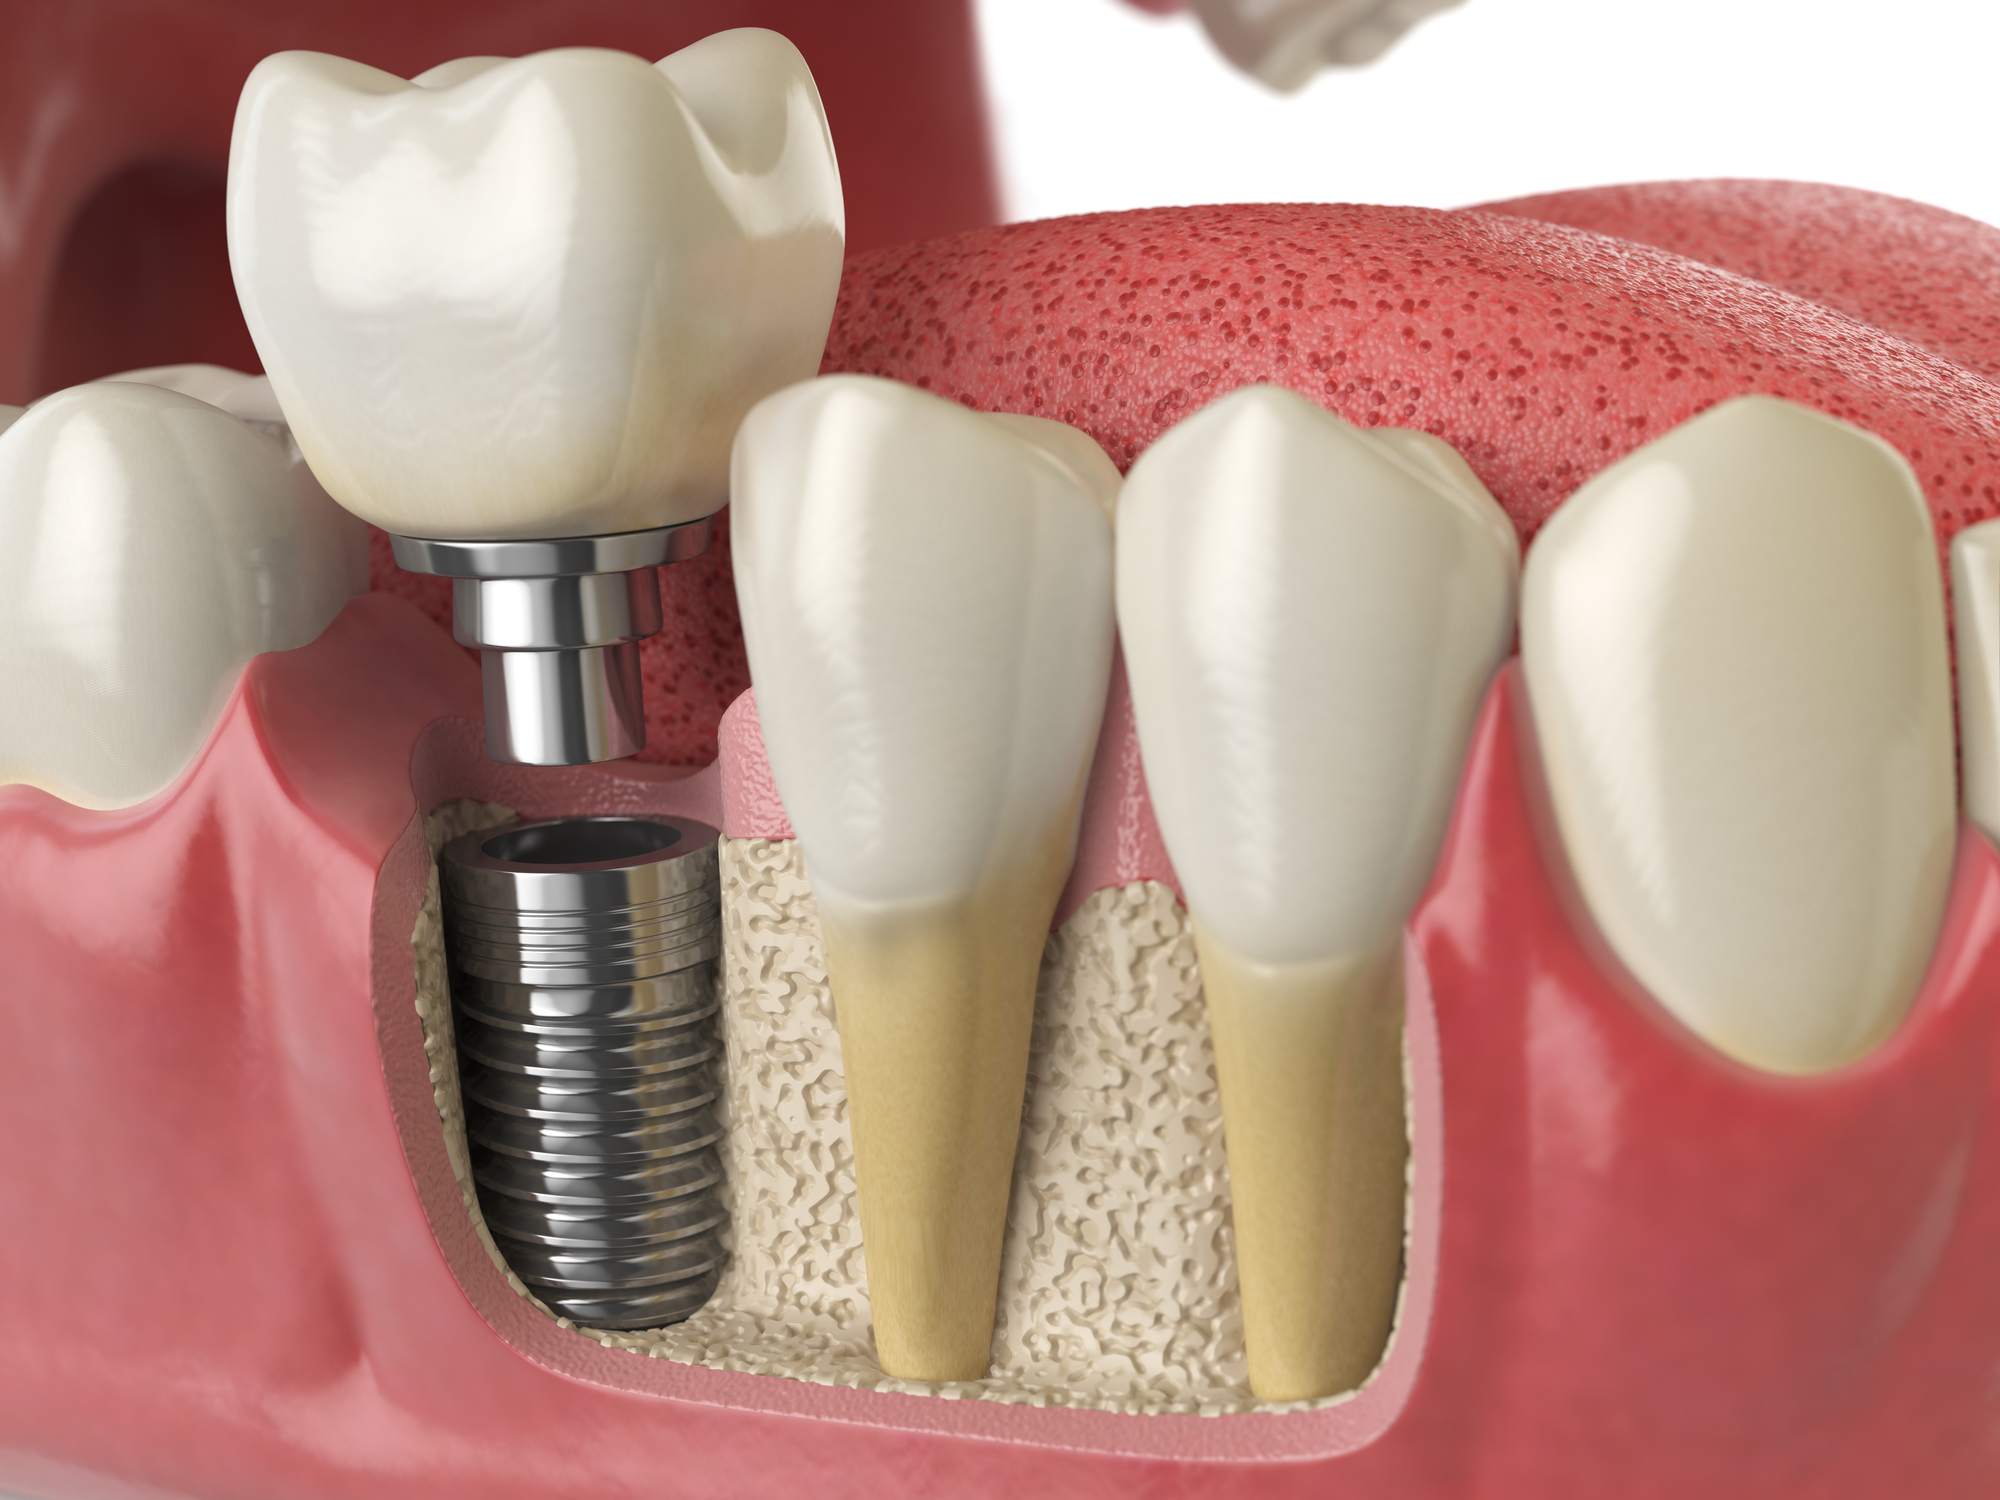 dental-implants-tooth-replacement.jpg